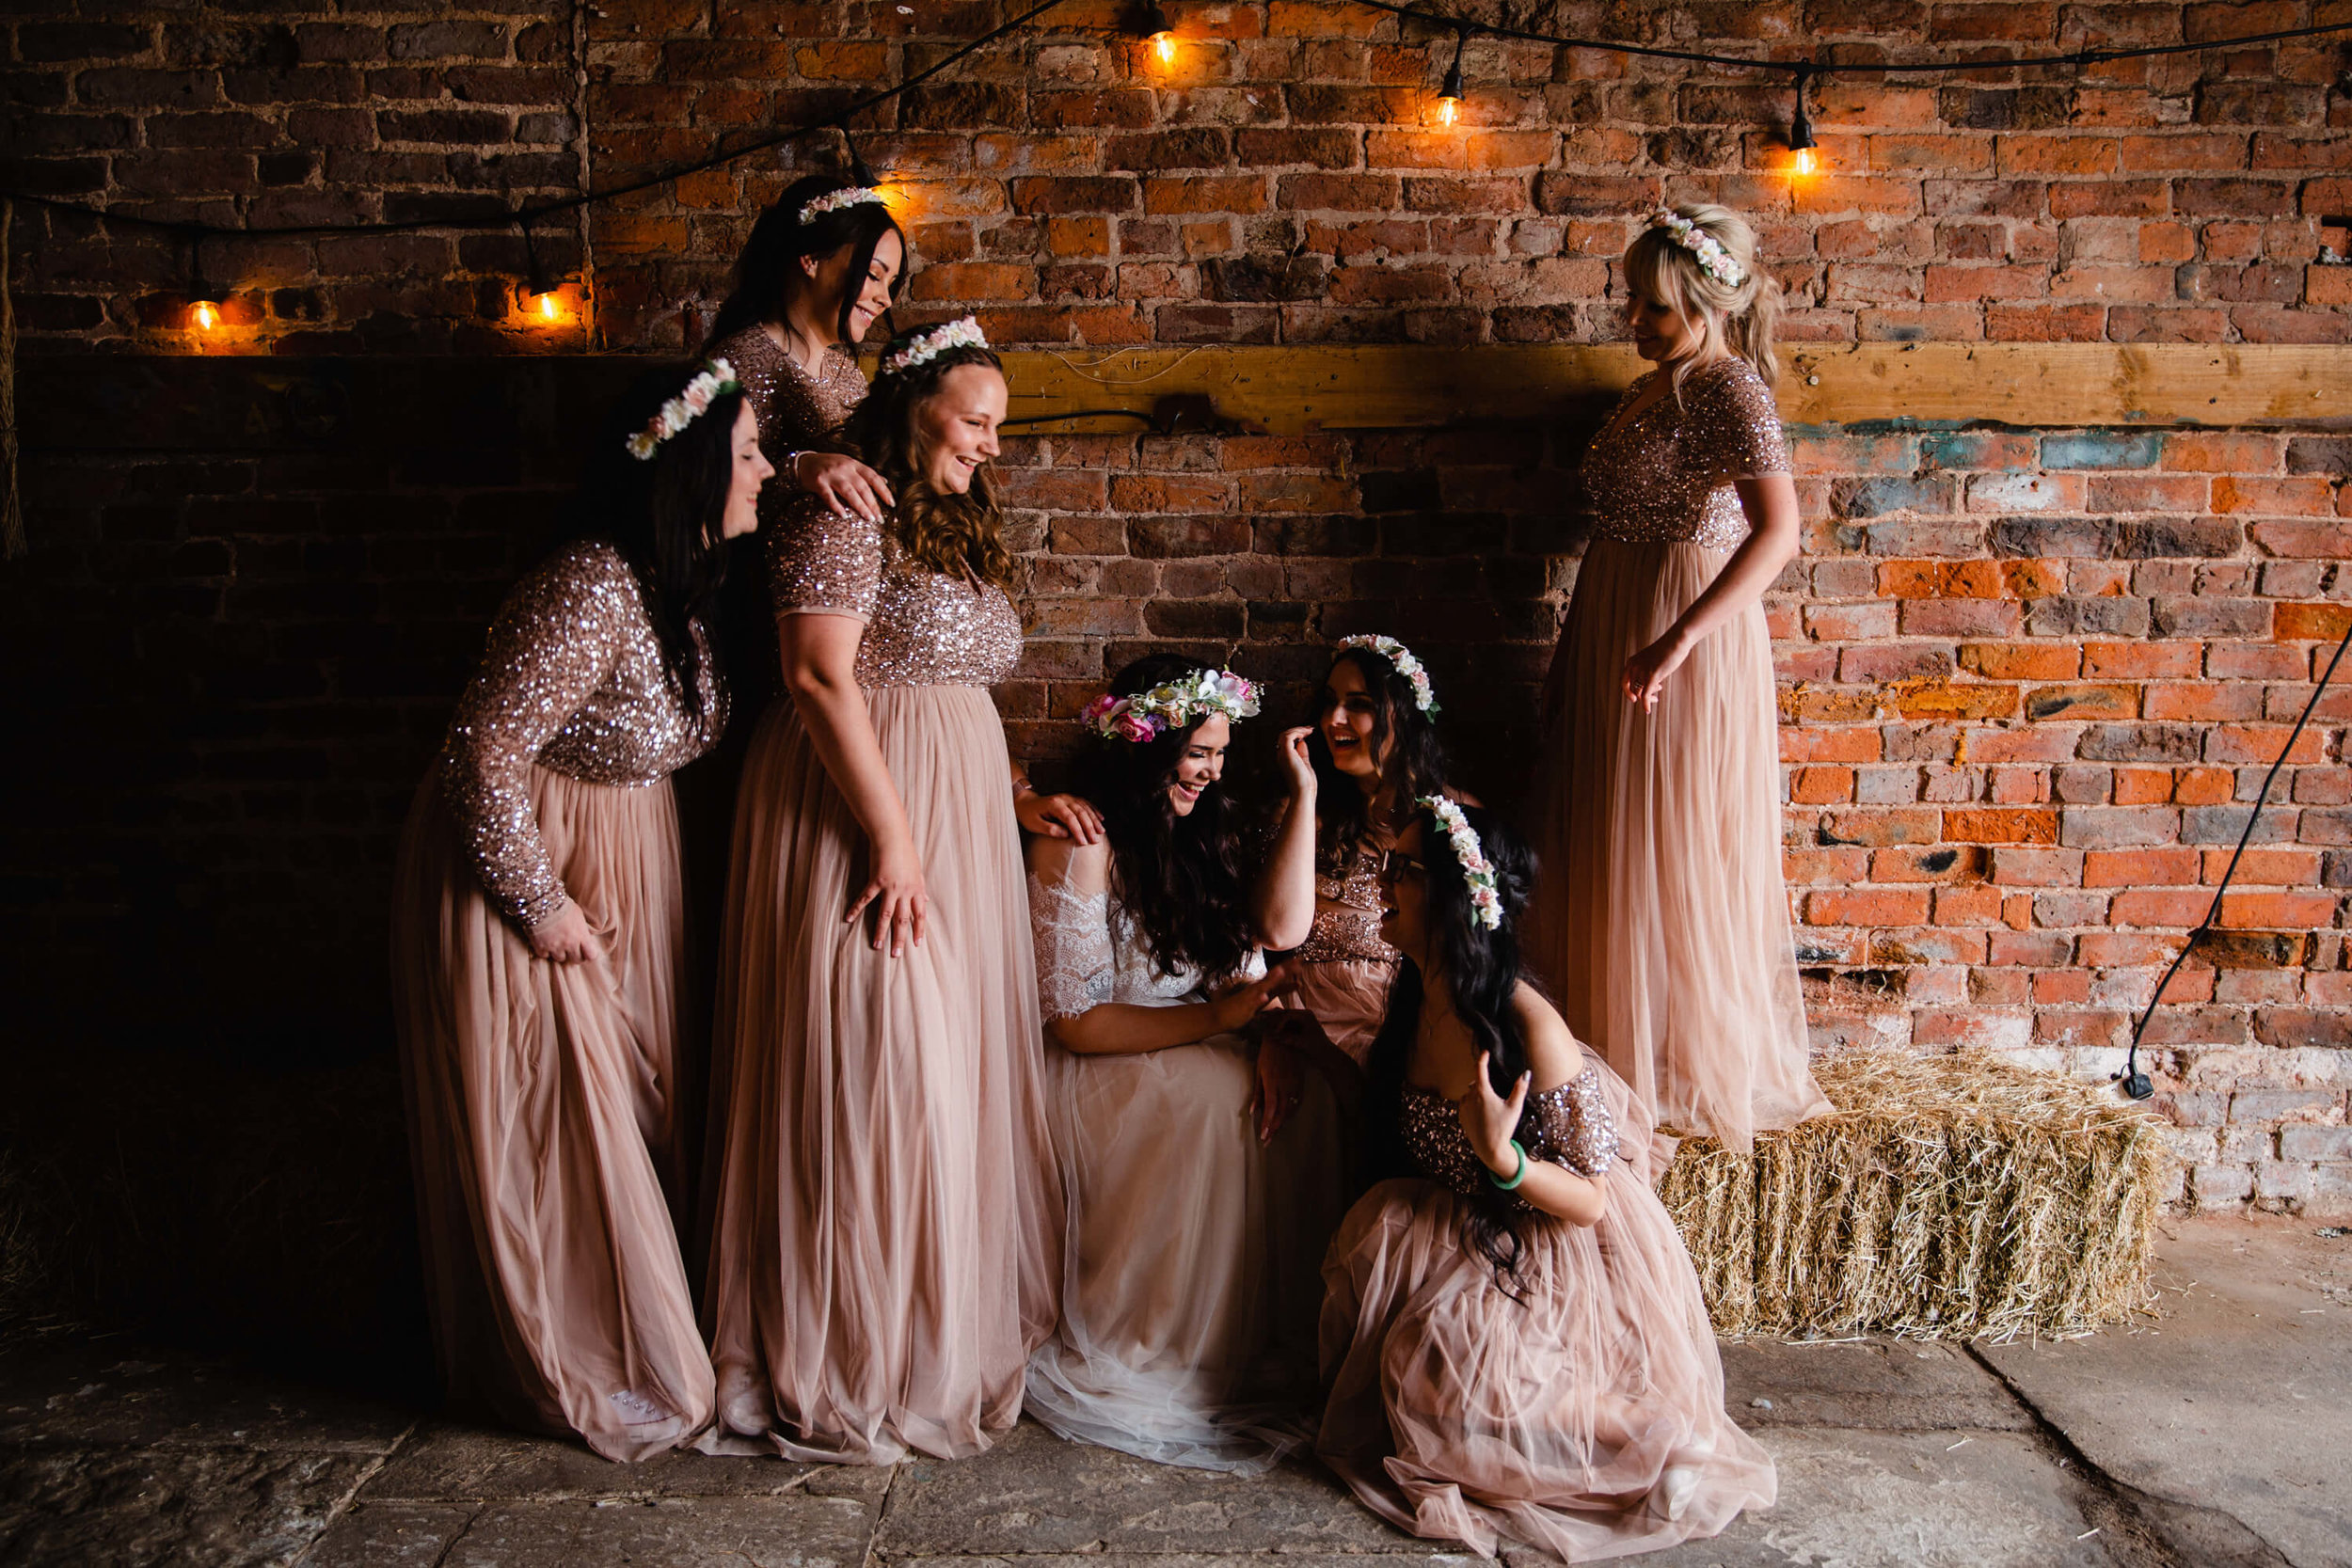 bridesmaids gather on hay bales lit up in natural light and festoon bulbs